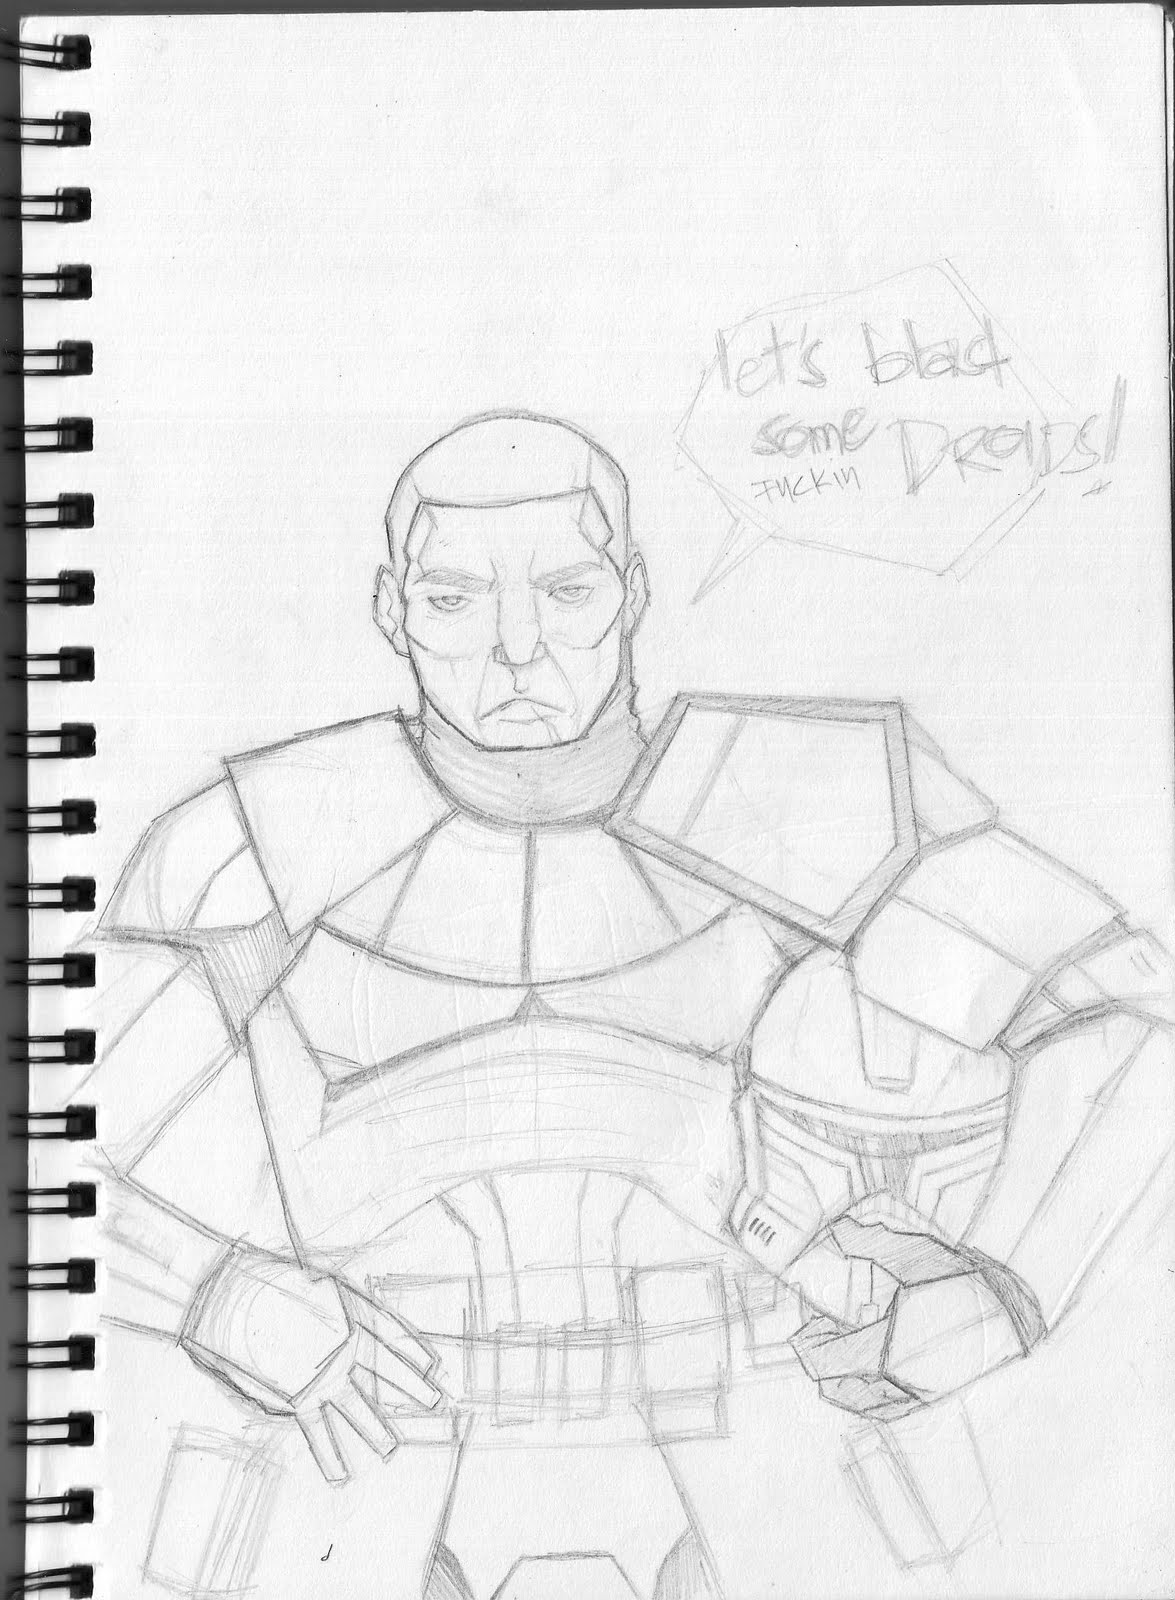 captain rex coloring page - less animated captain rex sketch kuris kuris chopsuey